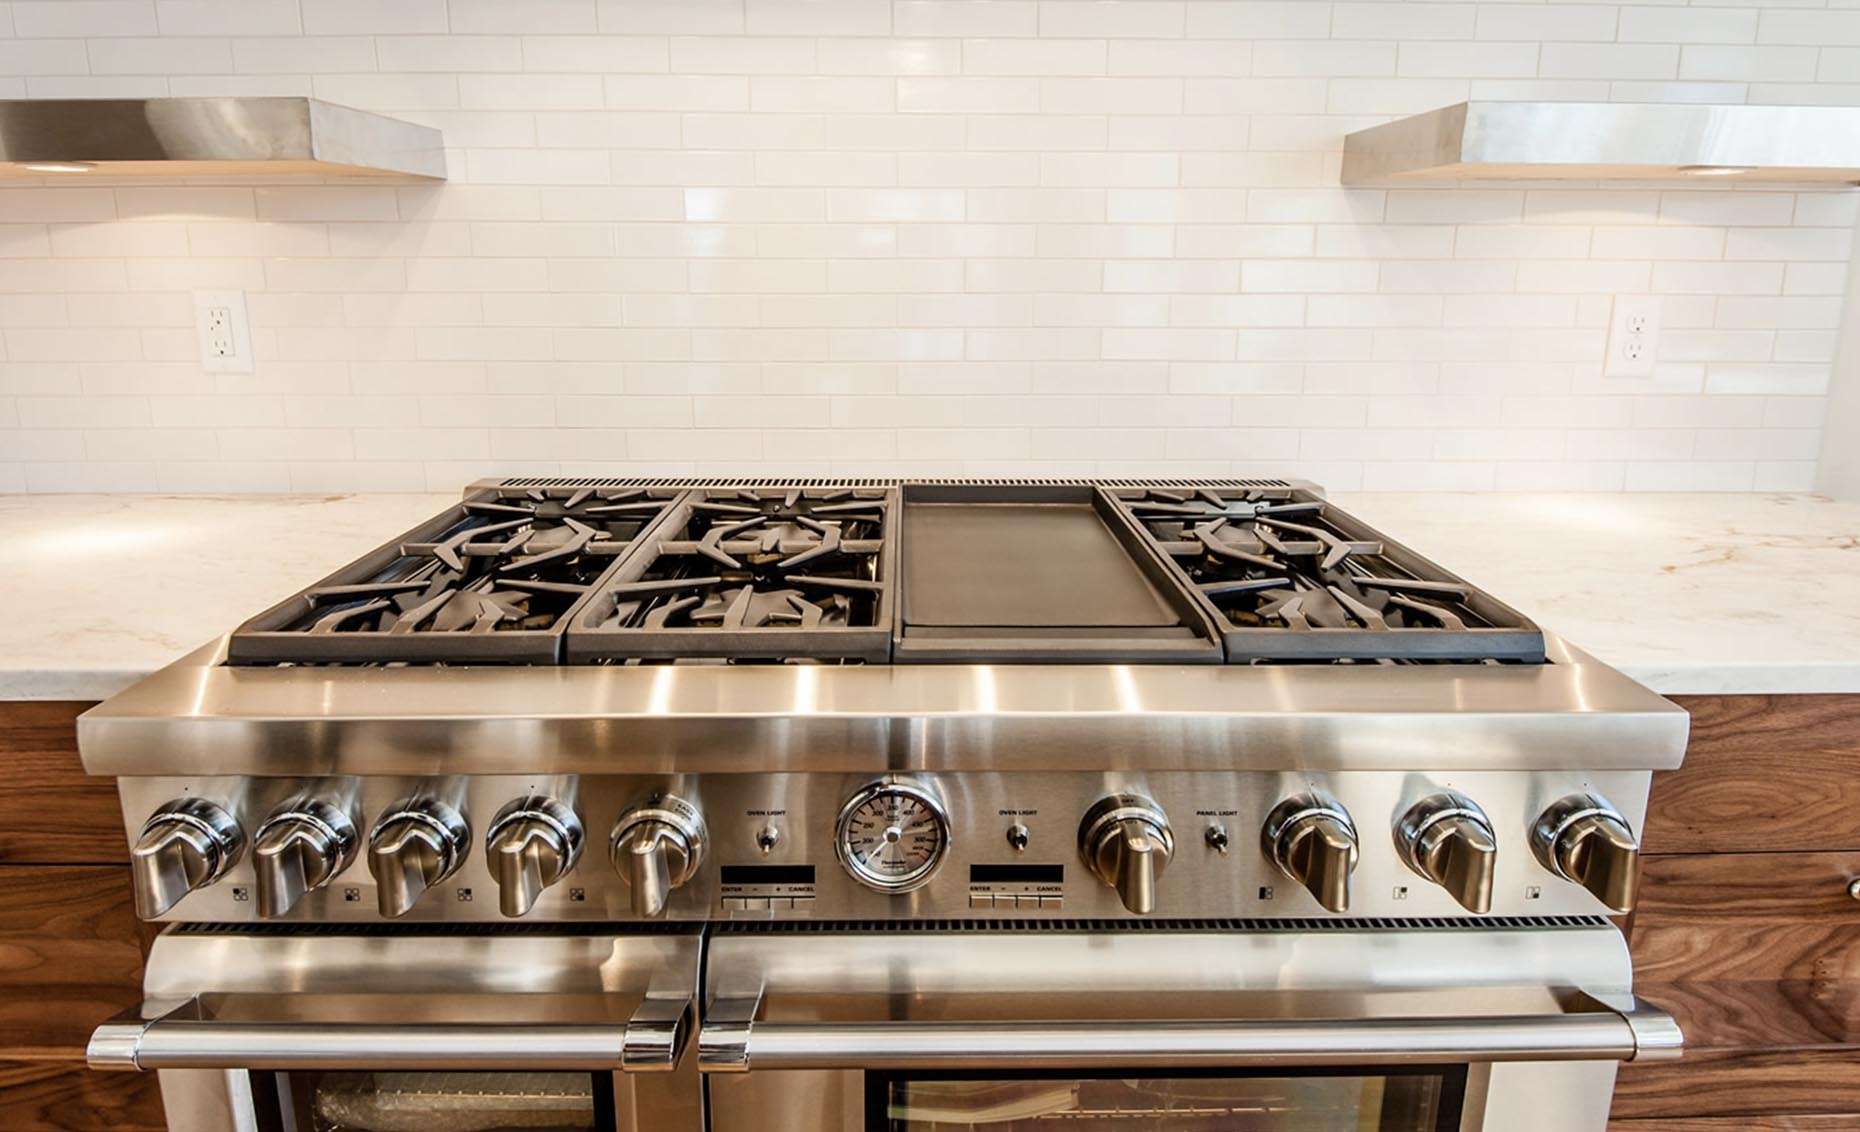 The Bungalow House Stainless Steel Gas Range